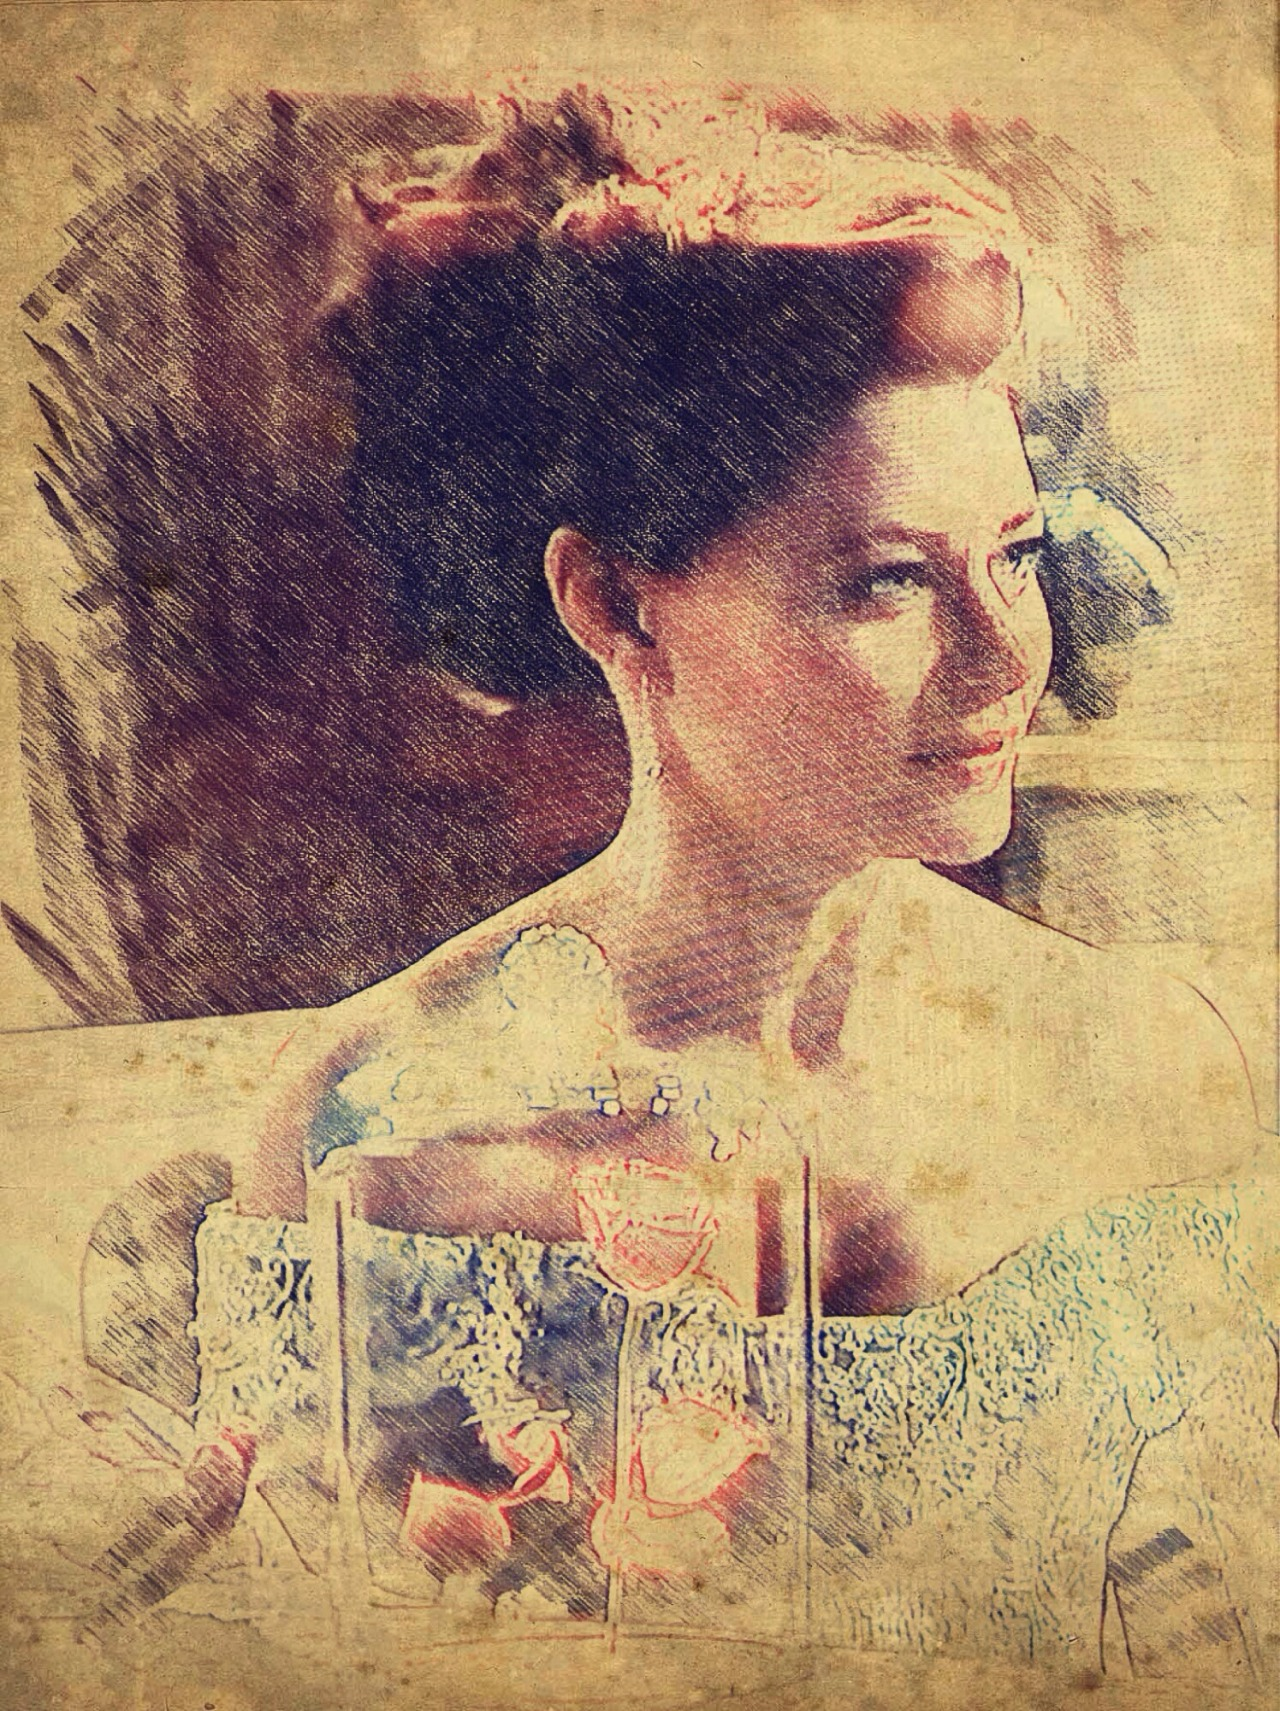 Le Rumbelle - Page 40 Tumblr_nw4qewbvNg1unpy1po1_1280